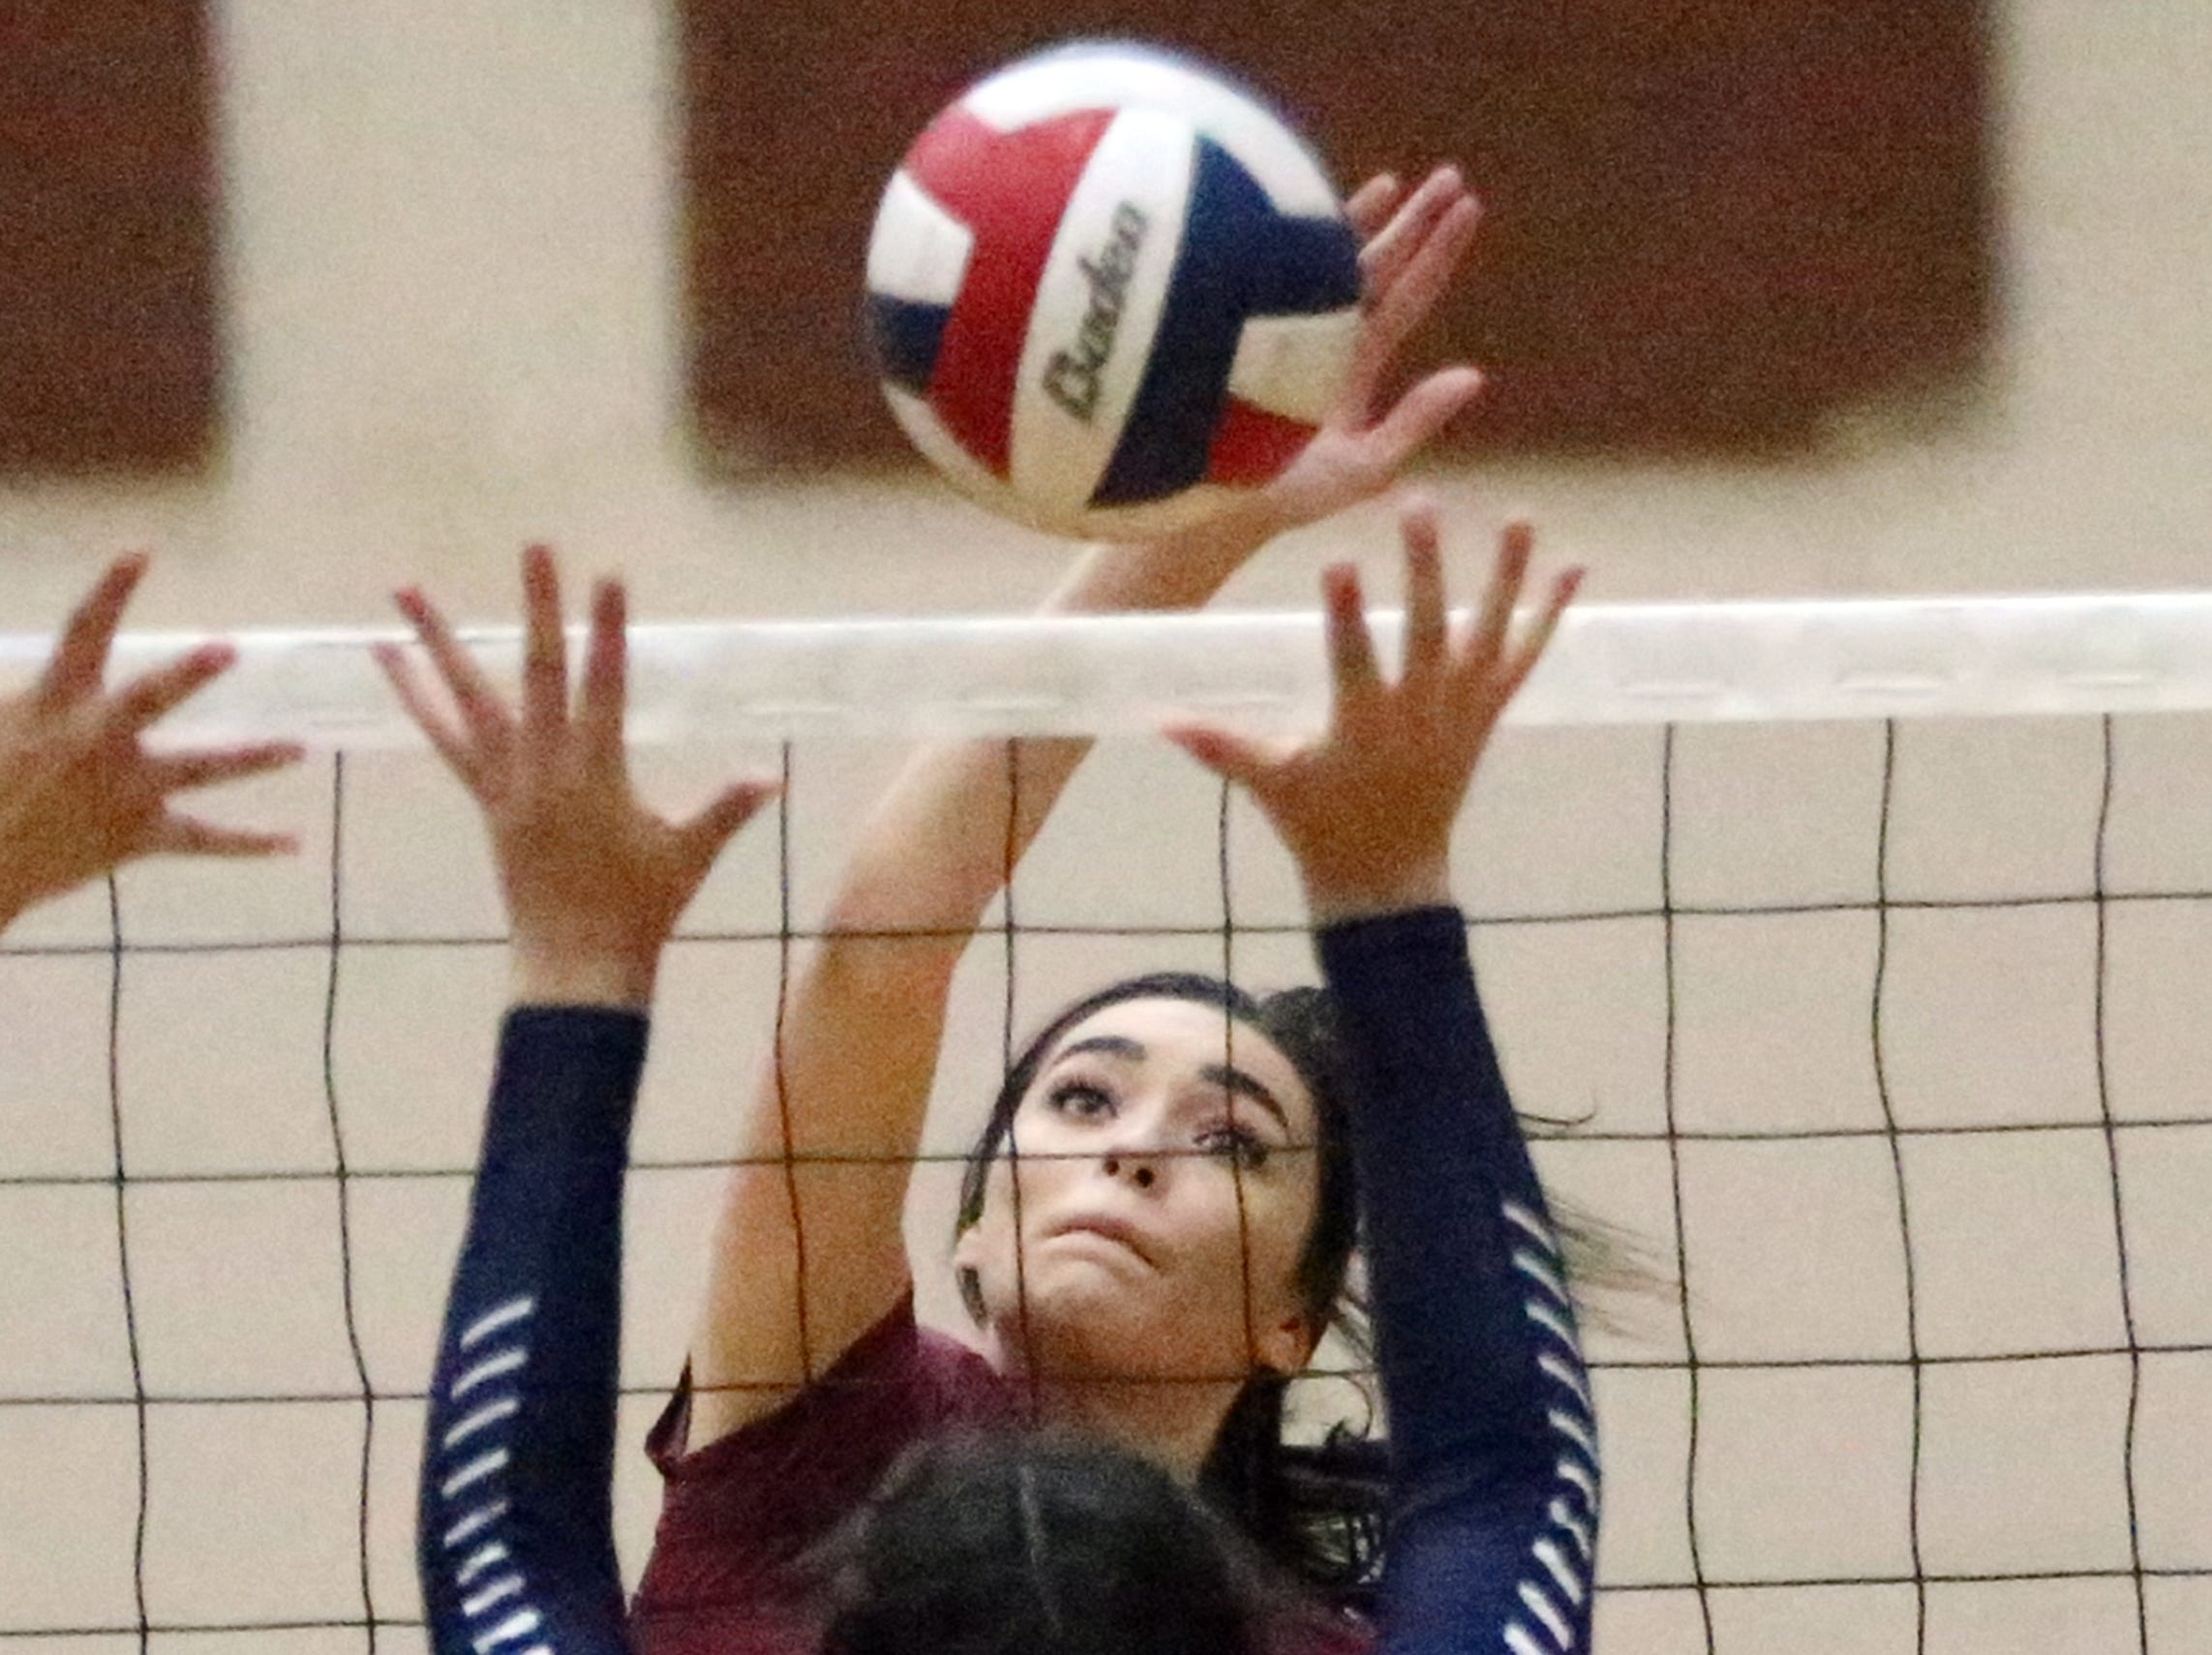 Paige McGriff, 1, of El Dorado fires over the net at Del Valle. She helped lead El Dorado to the District 2-5A title.